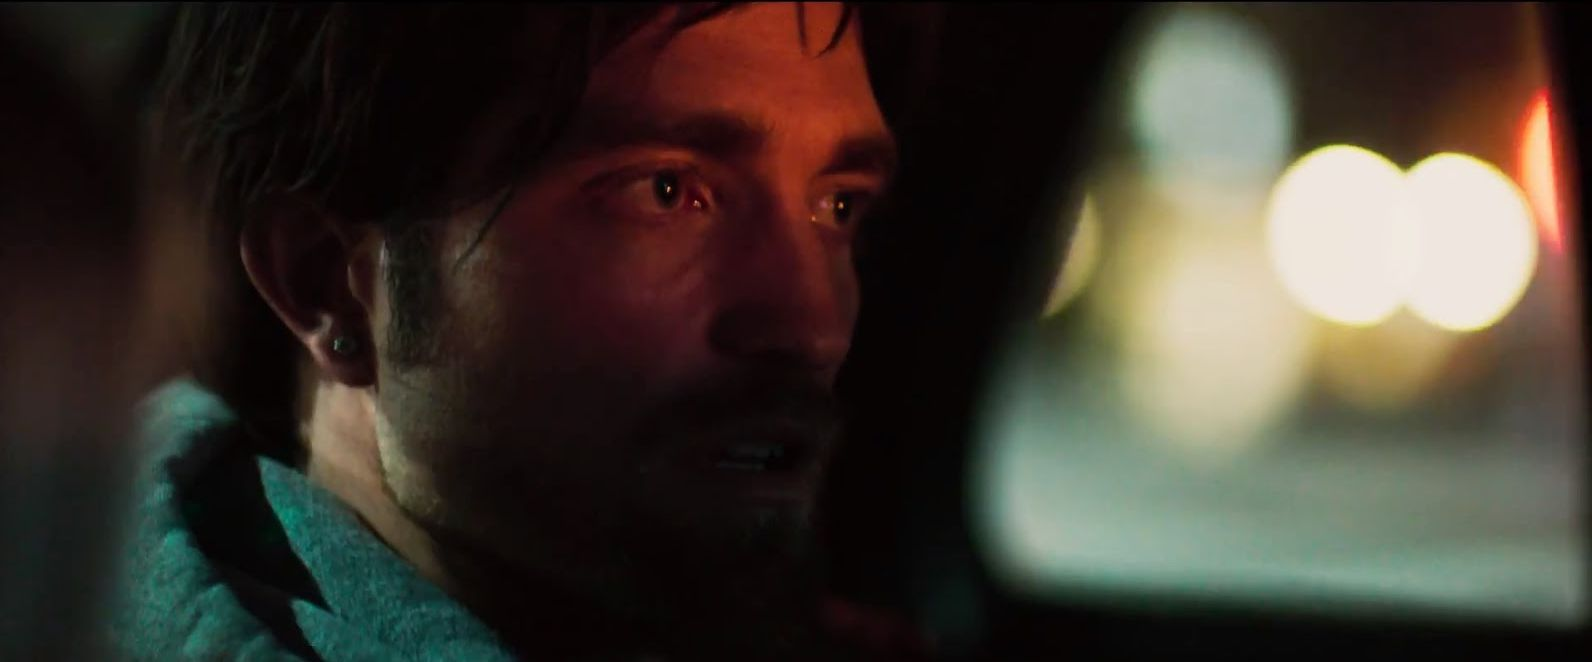 Robert Pattinson in Good Time - una scena del film: 452197 ...